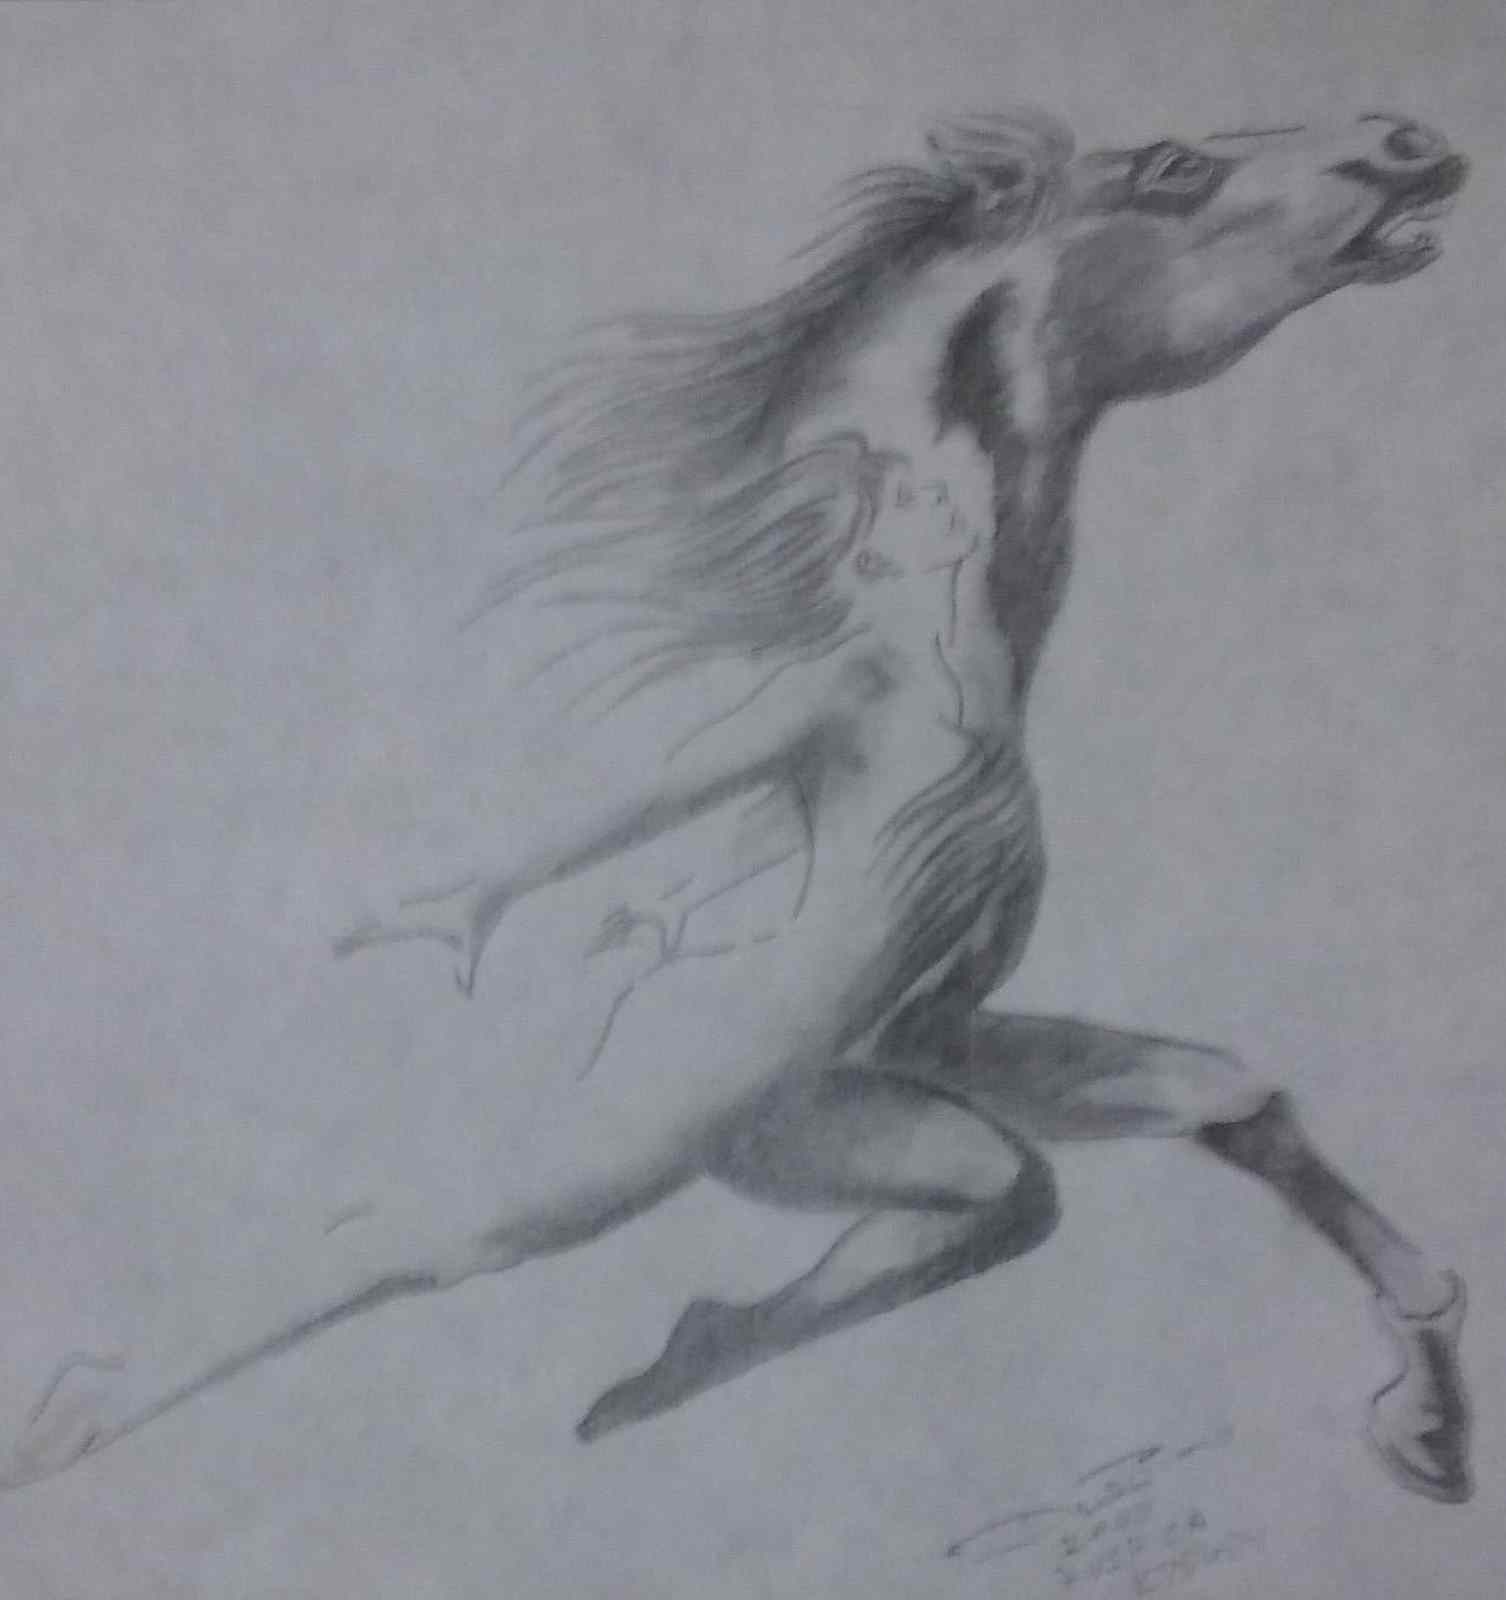 horse woman pencil drawing by Dino-horse woman pencil drawing by Dino - Copy.jpg